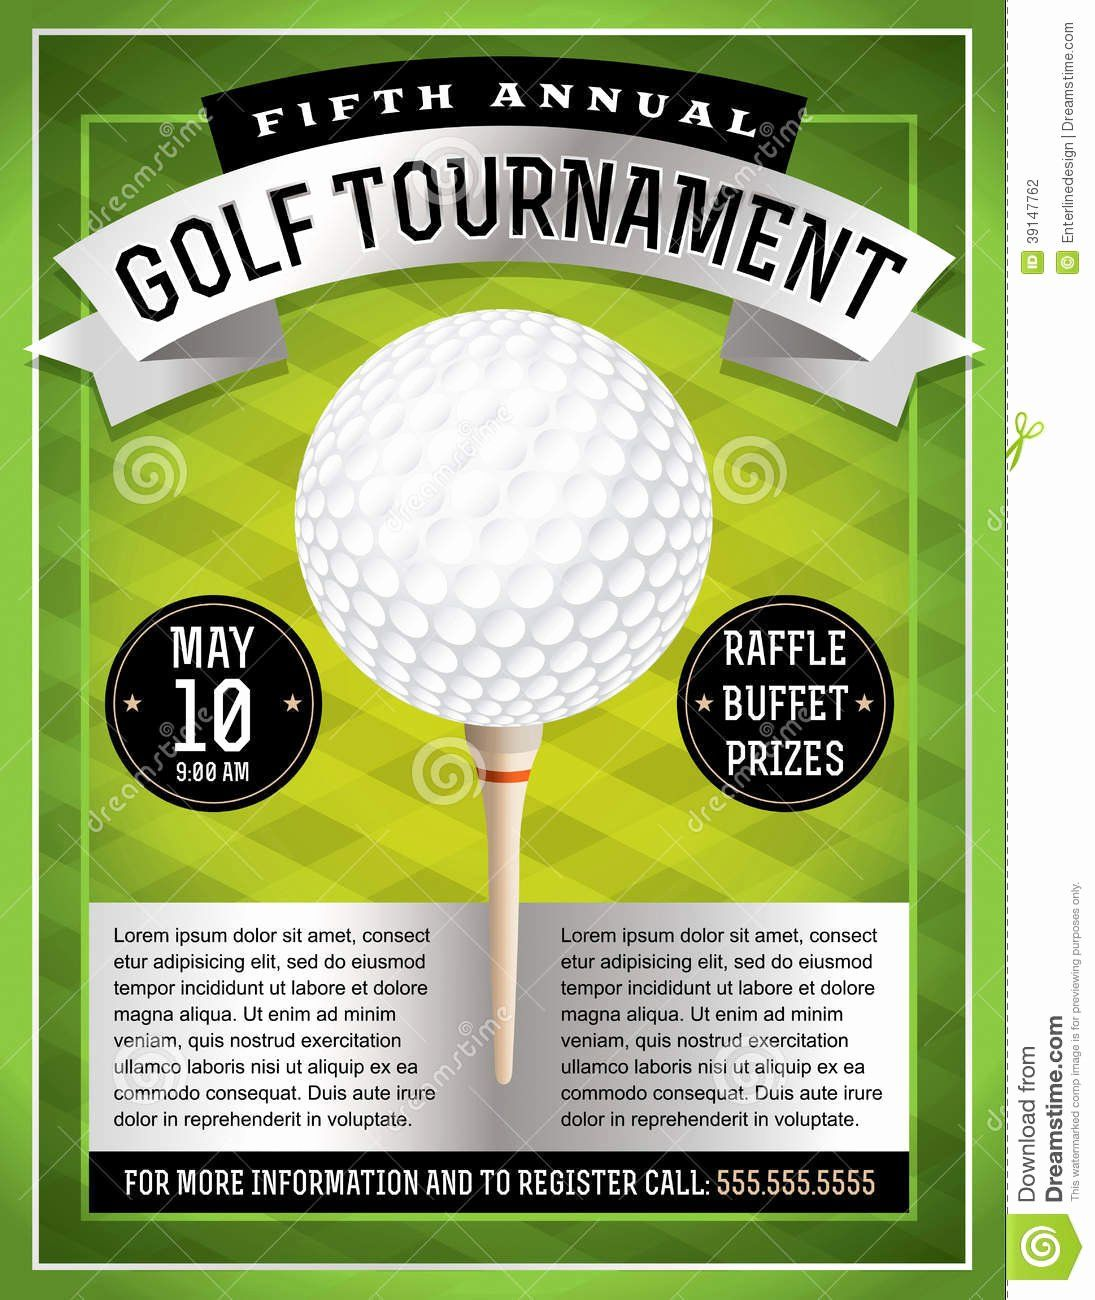 Free Golf Outing Flyer Template Best Of Free Golf Tournament Flyer Template Golf Tournament Free Golf Invitation Template Free golf tournament flyer template